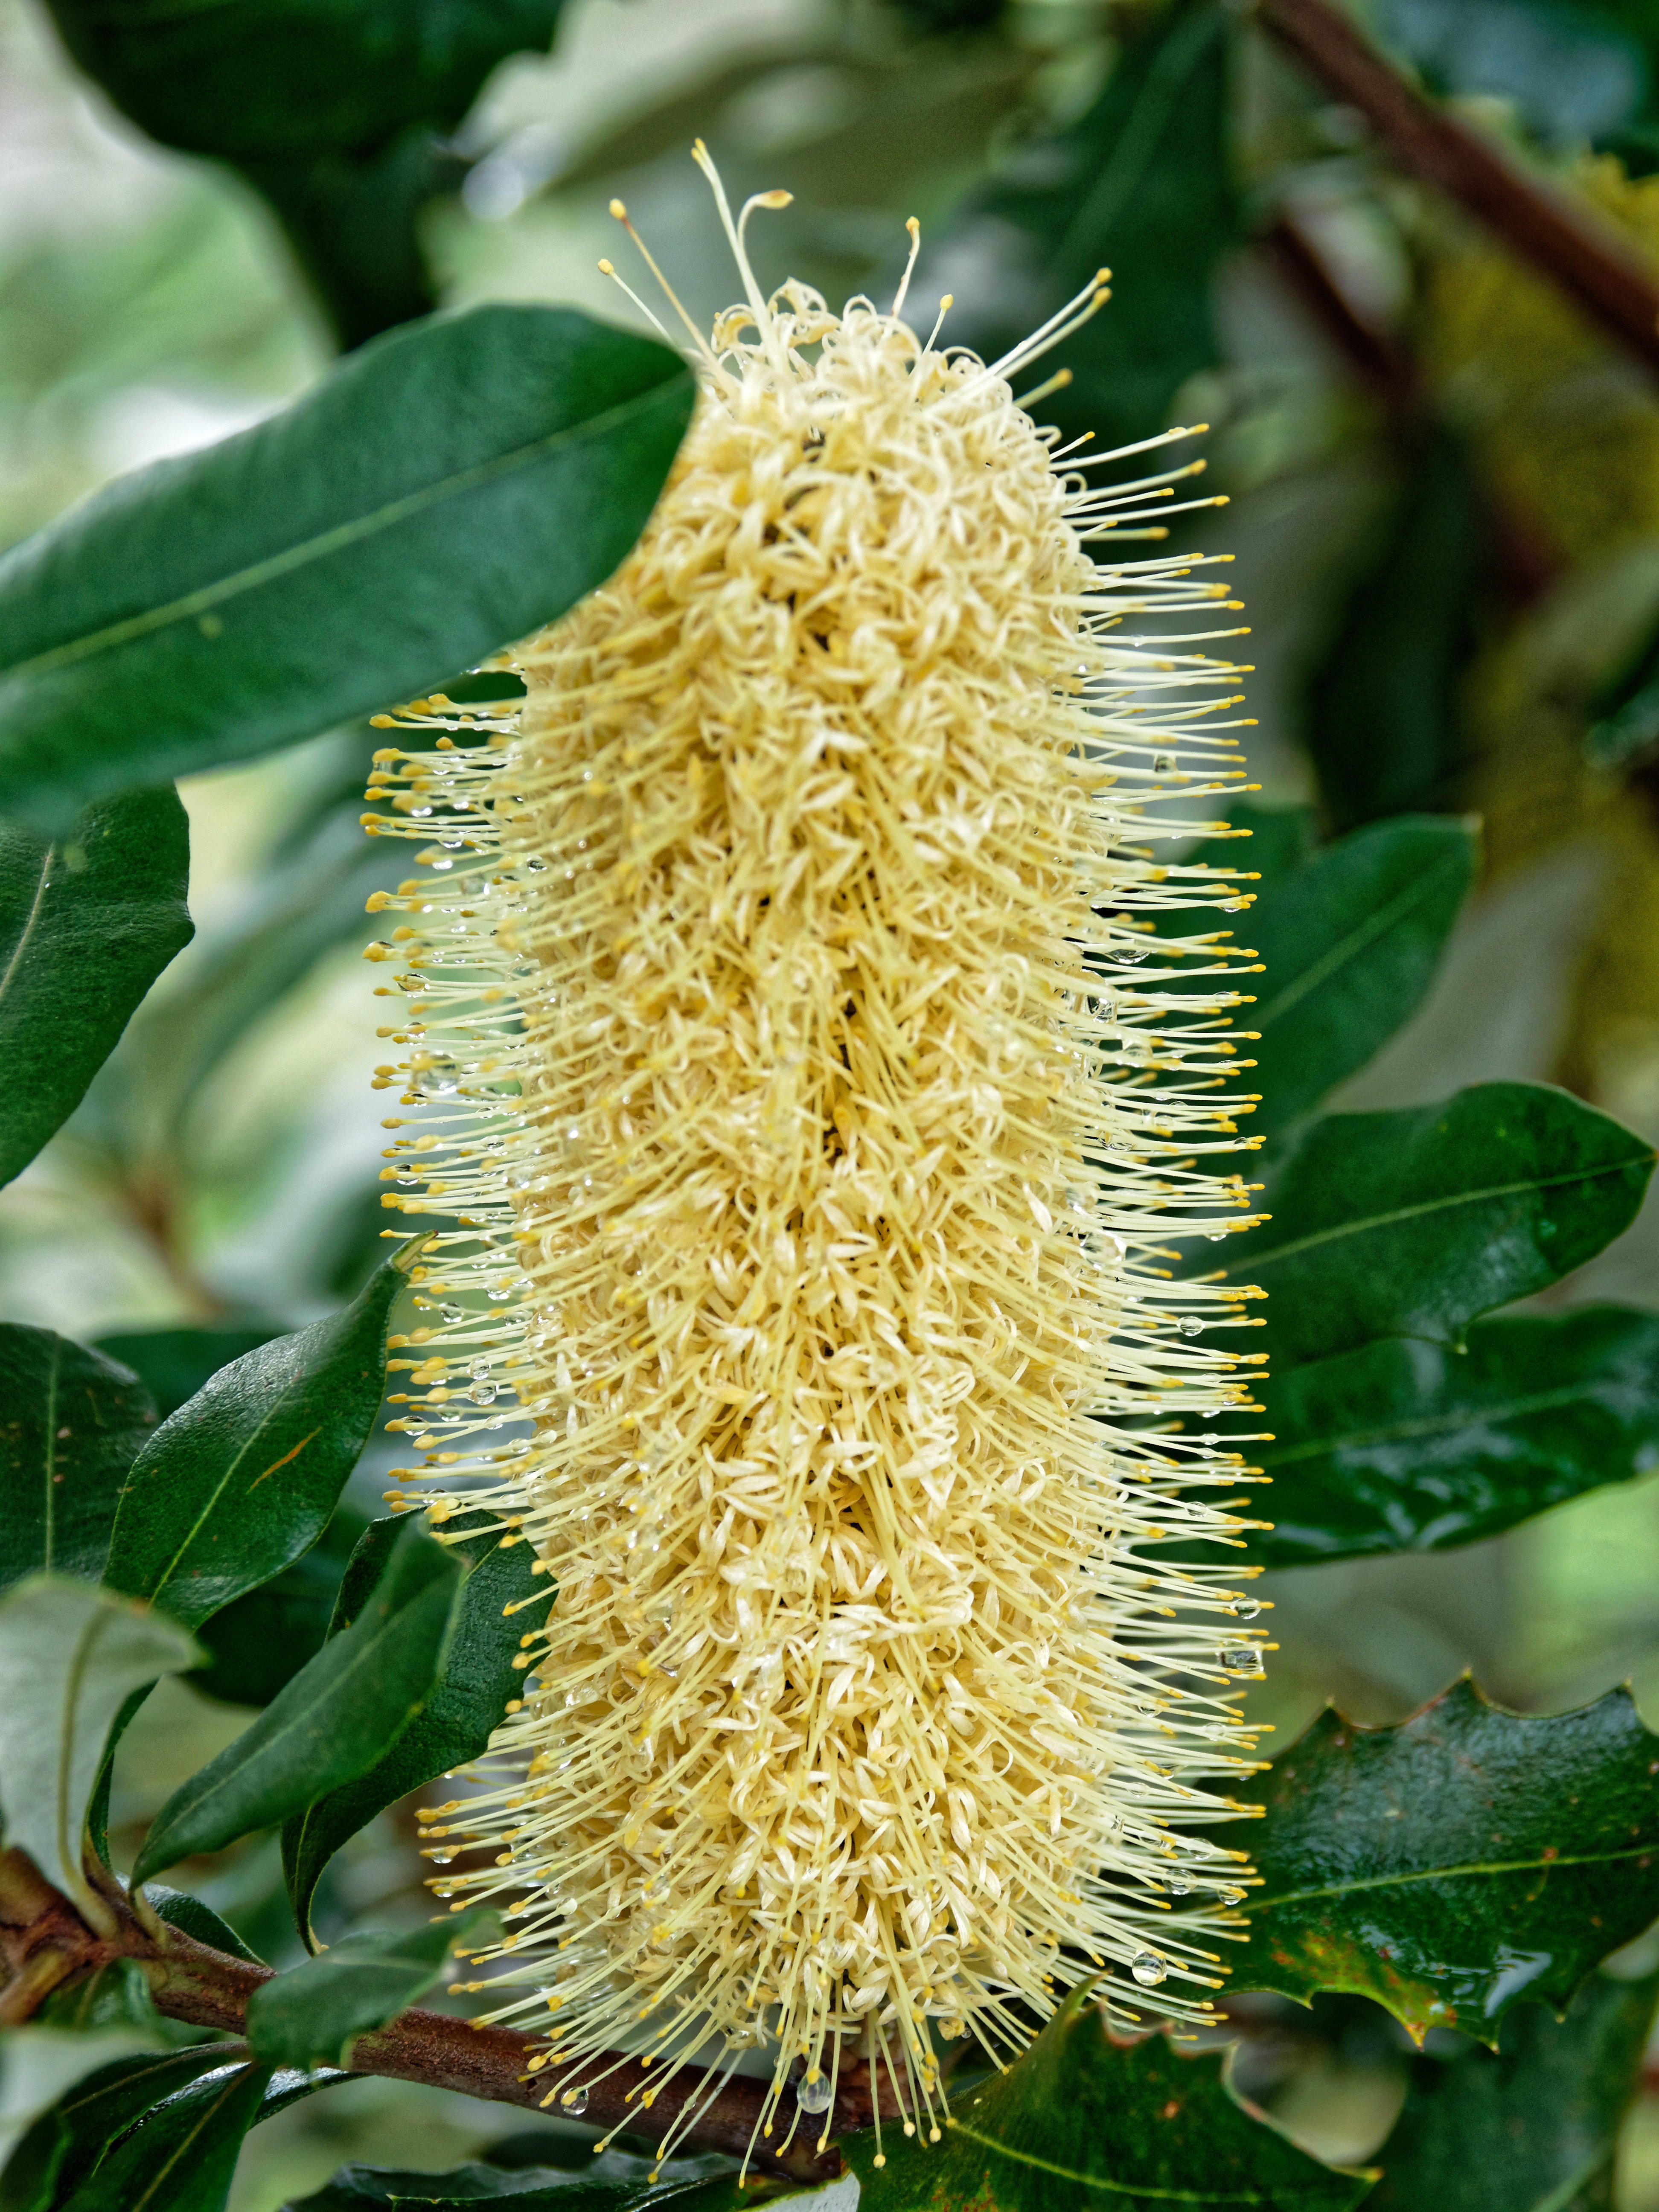 This should be Banksia-integrifolia-2.jpeg.  Is it missing?